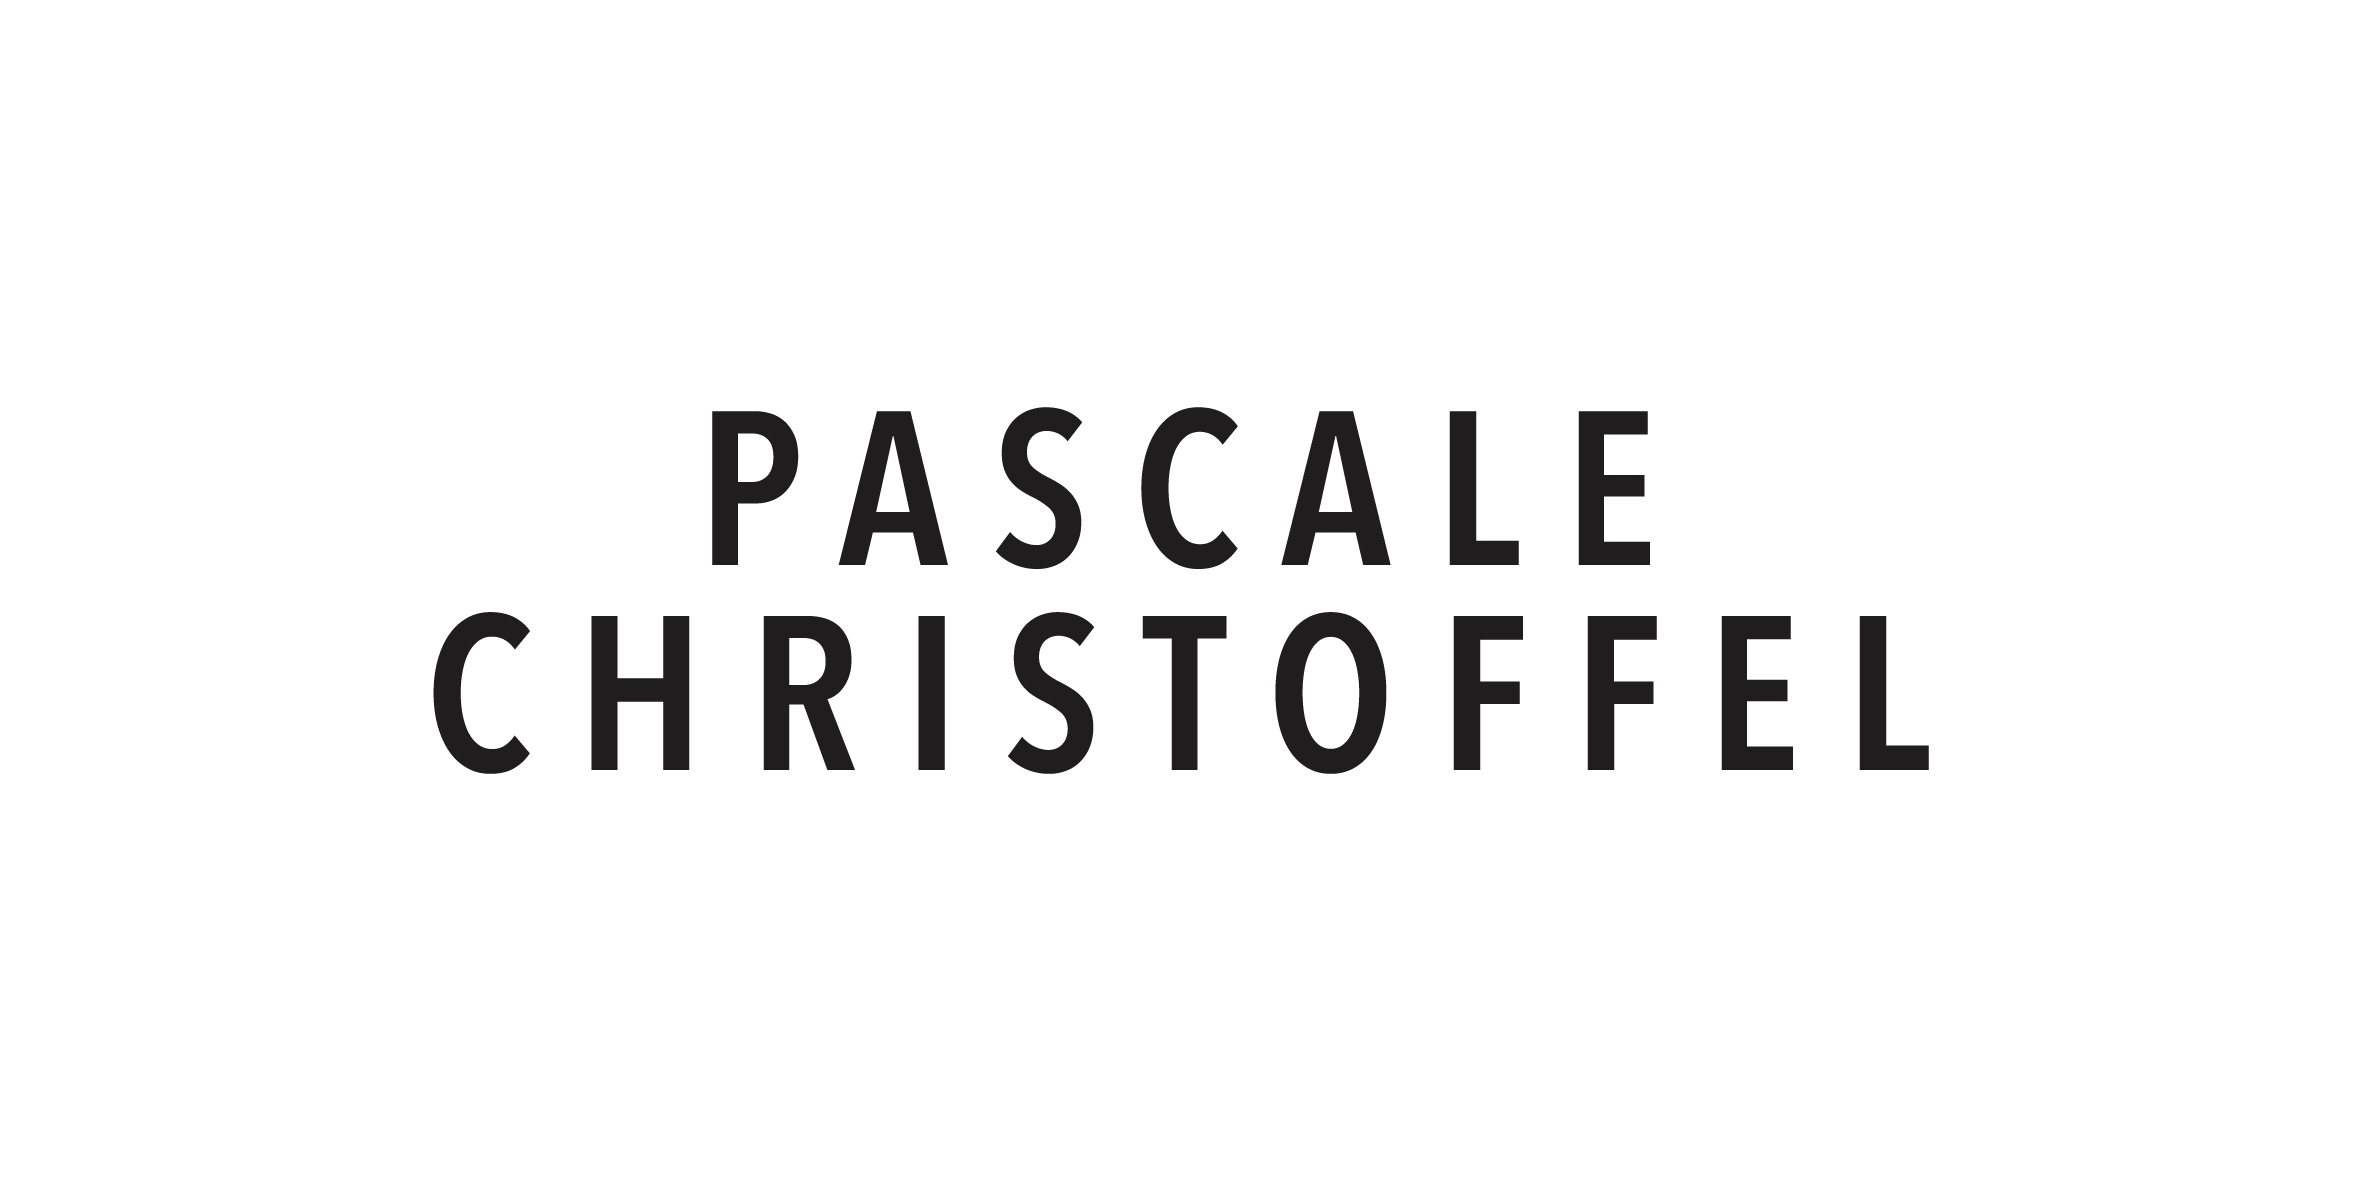 Pascale Christoffel